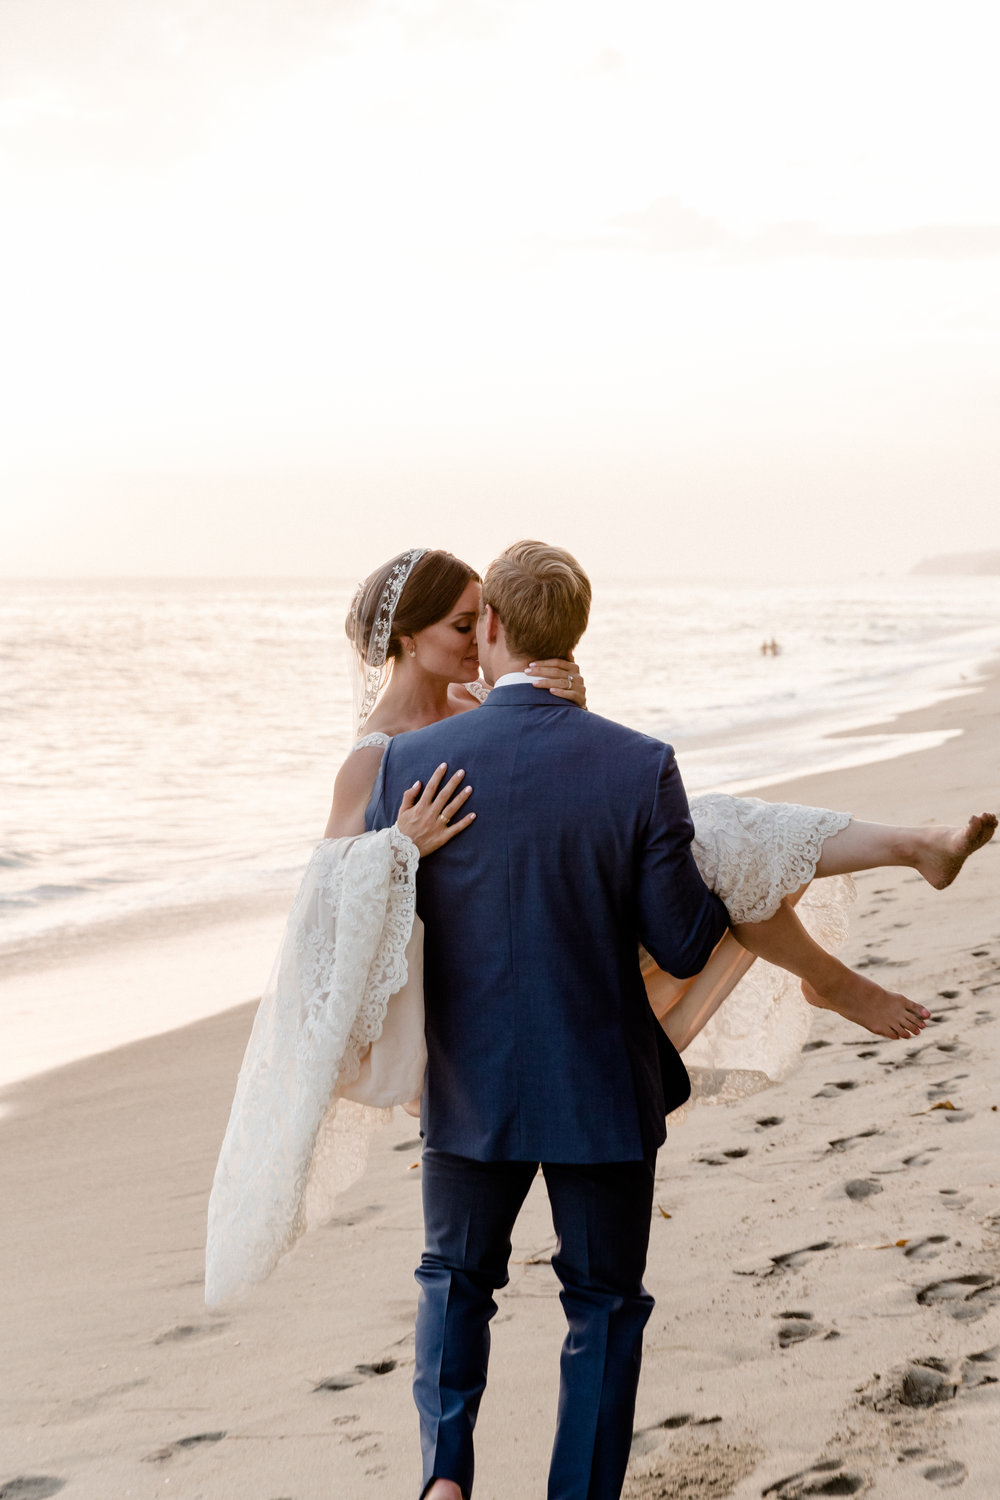 Hailley+Howard_The+Surf+and+Sand_Laguna+Beach_Wedding+Photography-333.jpg